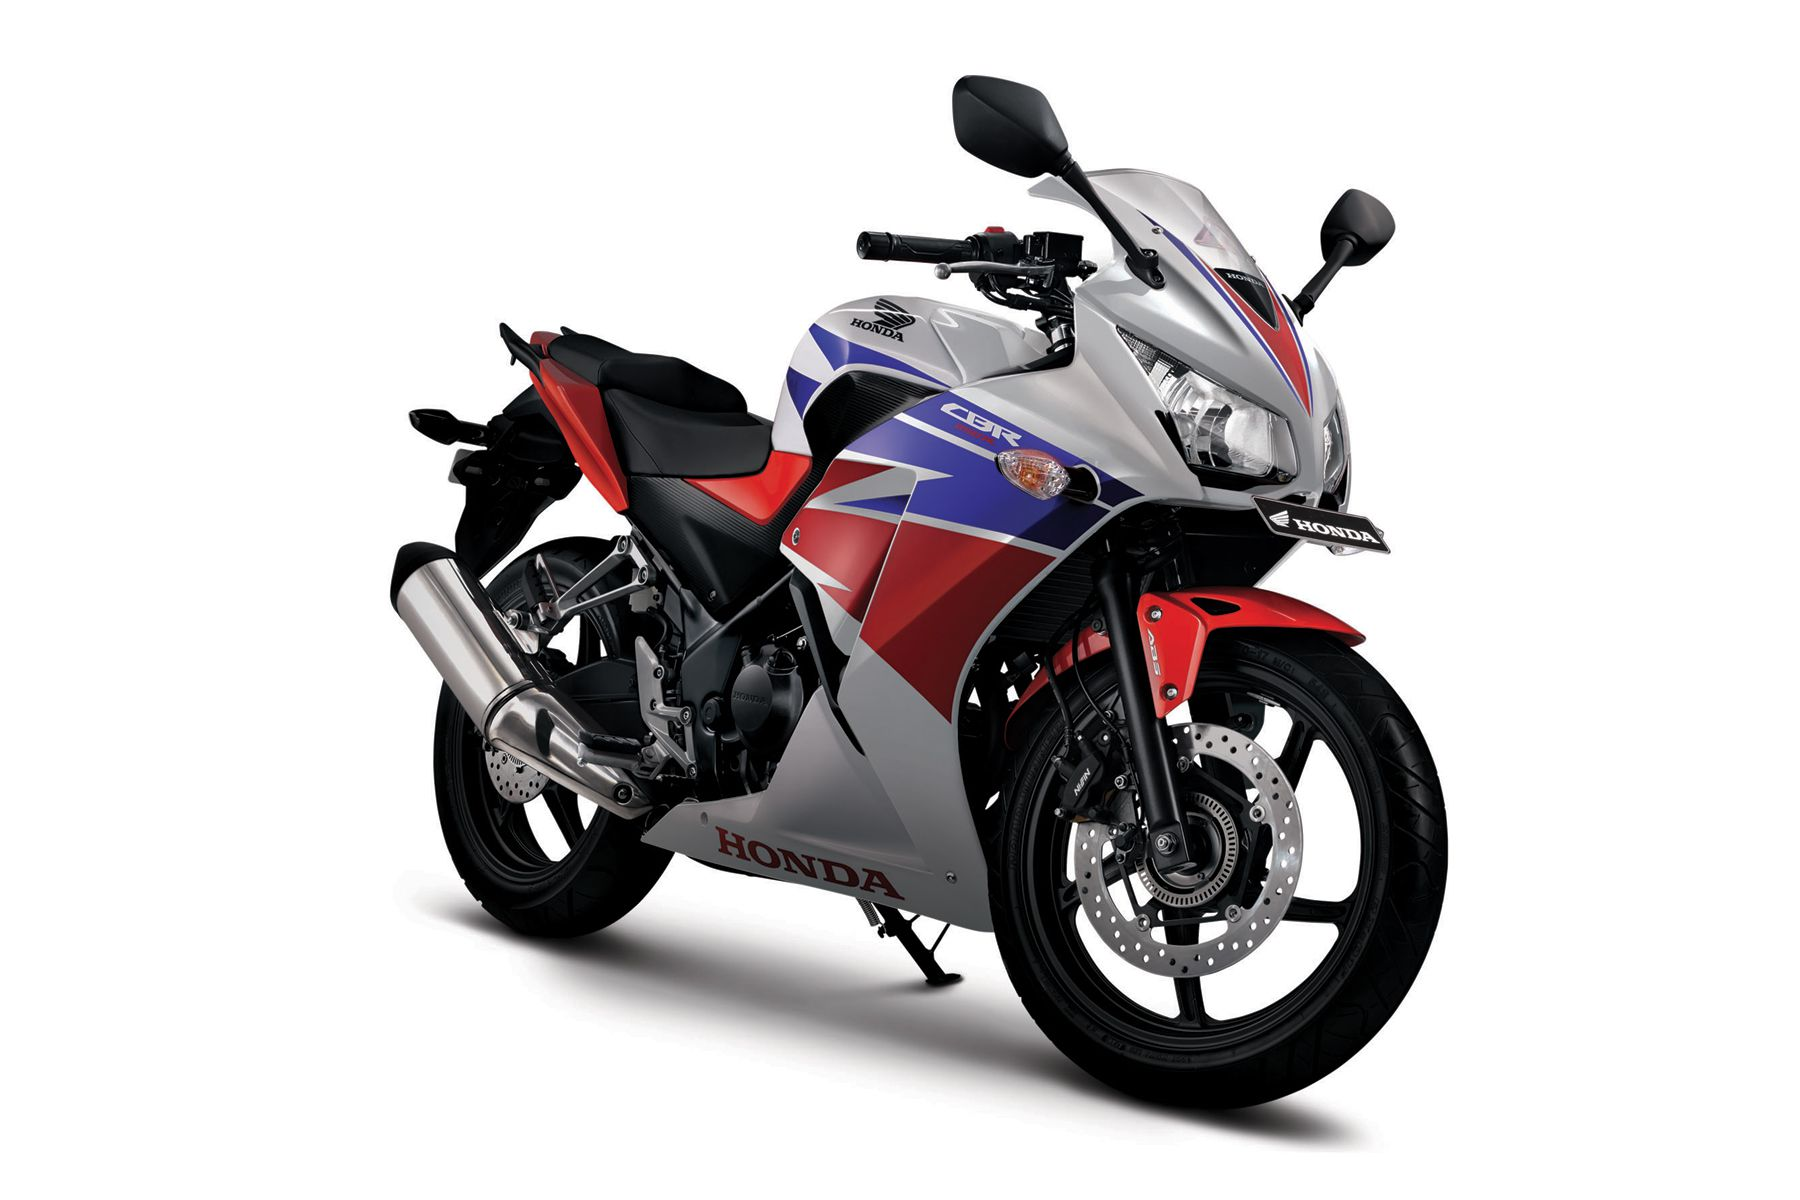 New 2015 Honda CBR250R Launched With More Power & Twin Headlamps in Indonesia